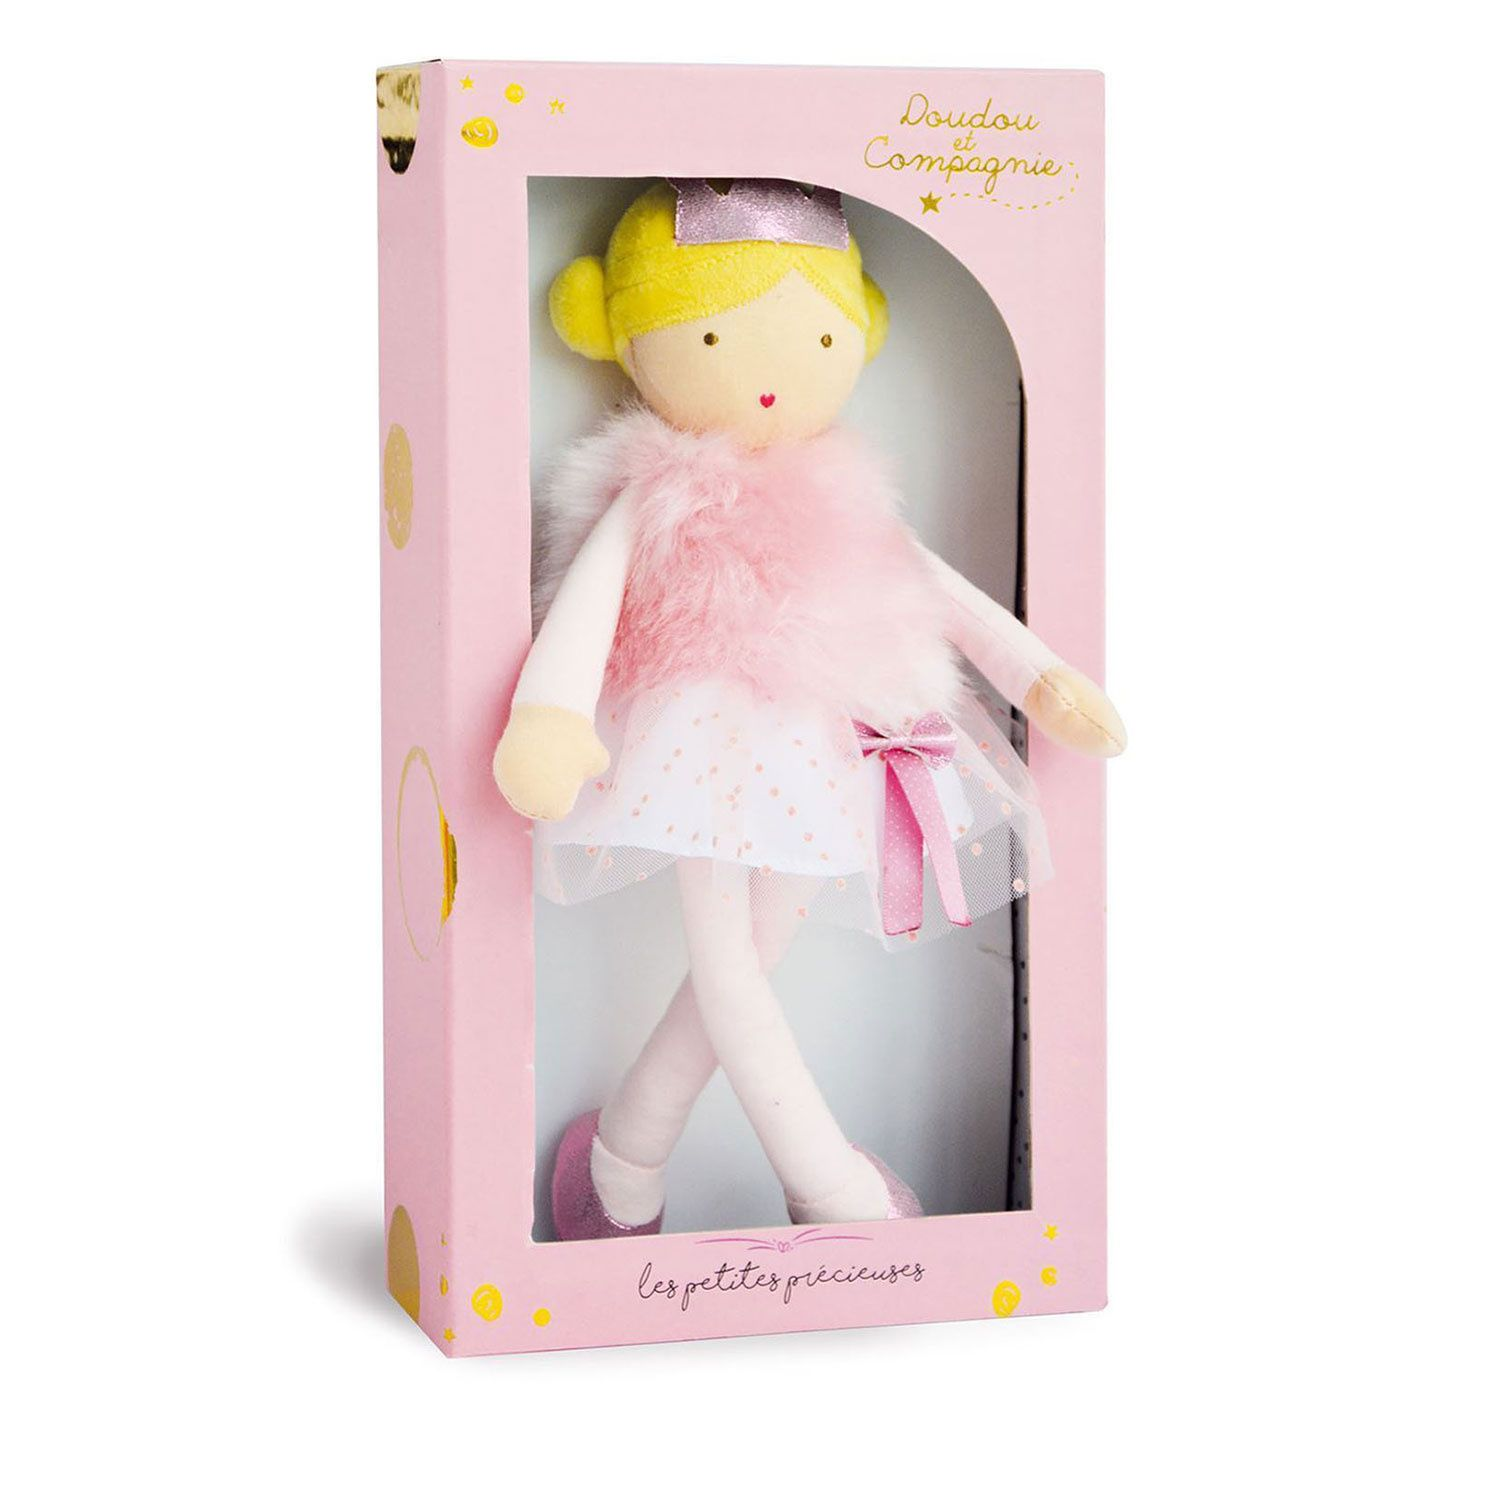 Picture of Doudou et Compagnie DC3400 baby accessory light pink